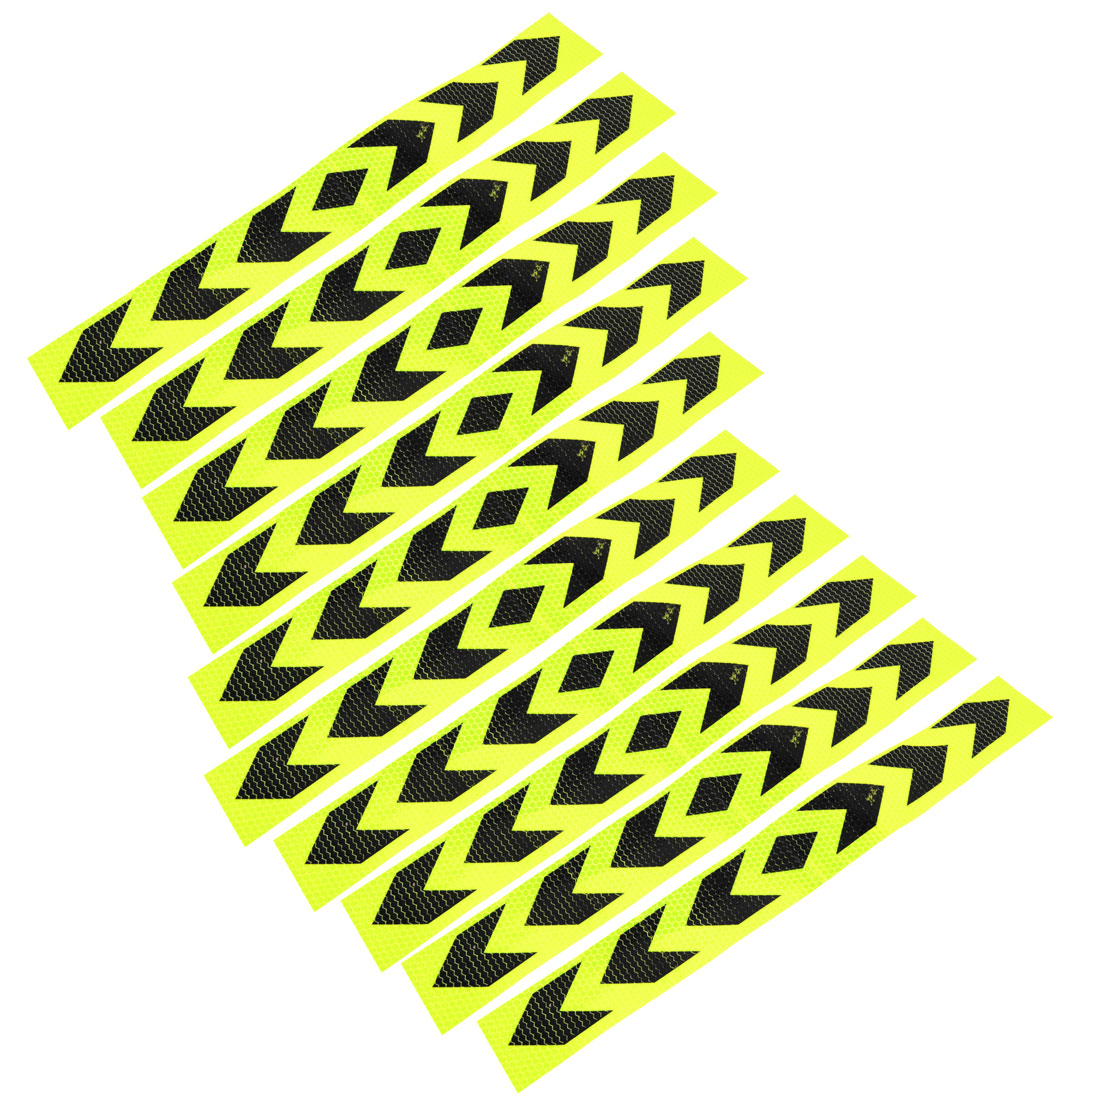 10 Pcs Reflective Arrow Pattern Sticker Yellow Black 40cm Long for Car